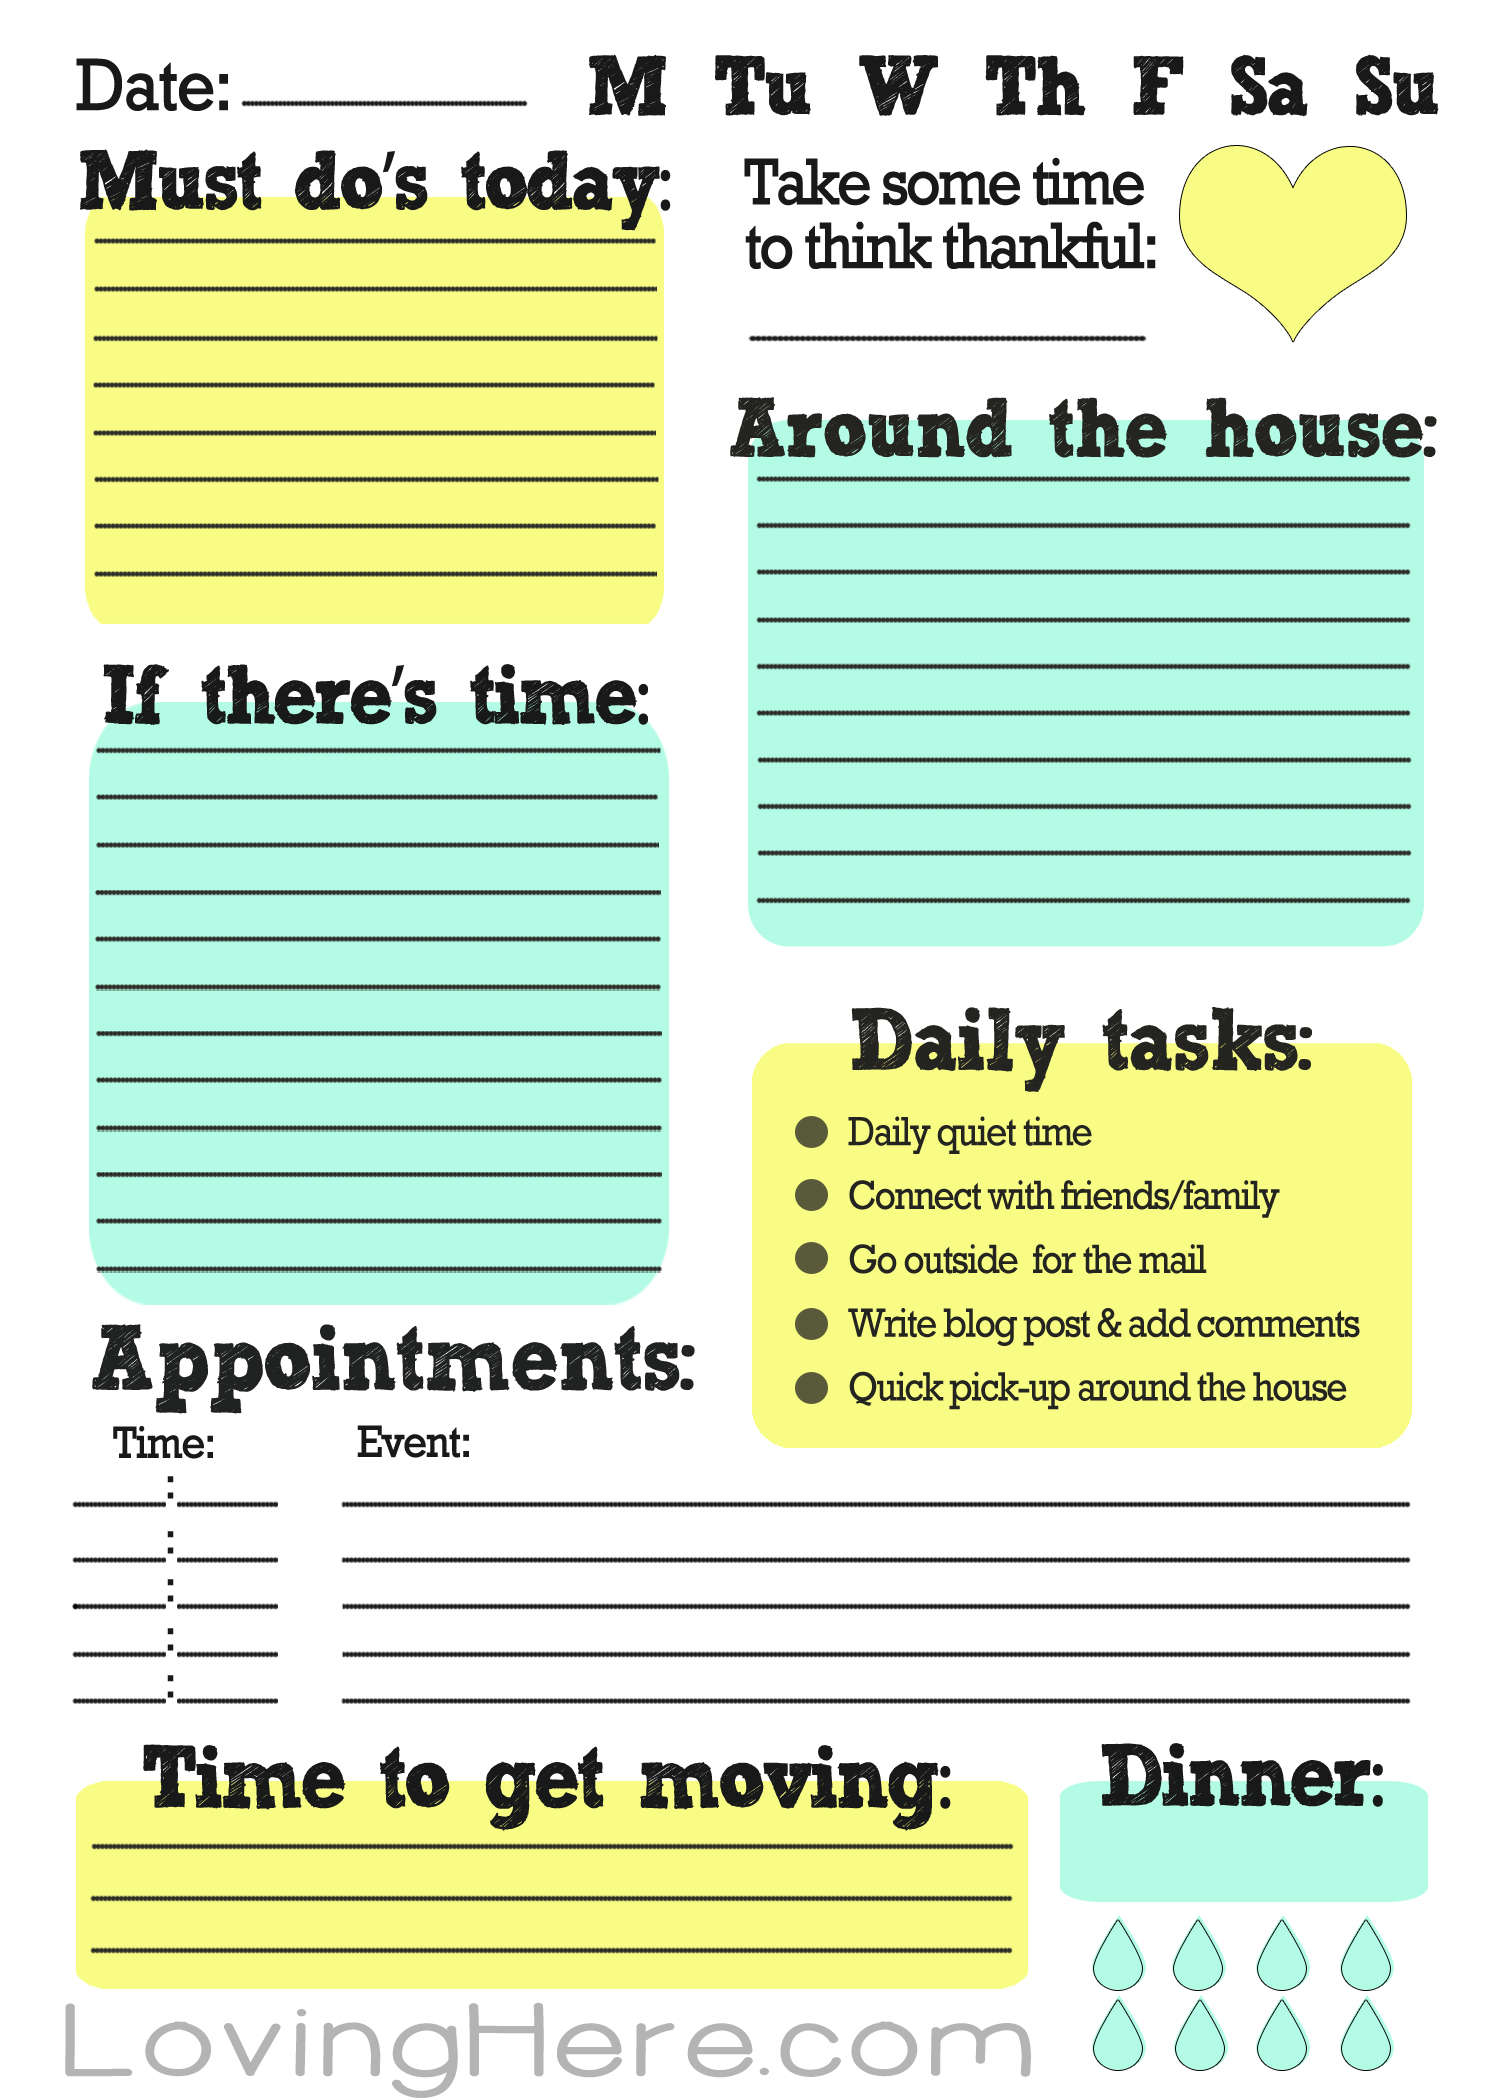 Cute Daily To Do List Pictures to Pin PinsDaddy – Free Printable Daily to Do List Template